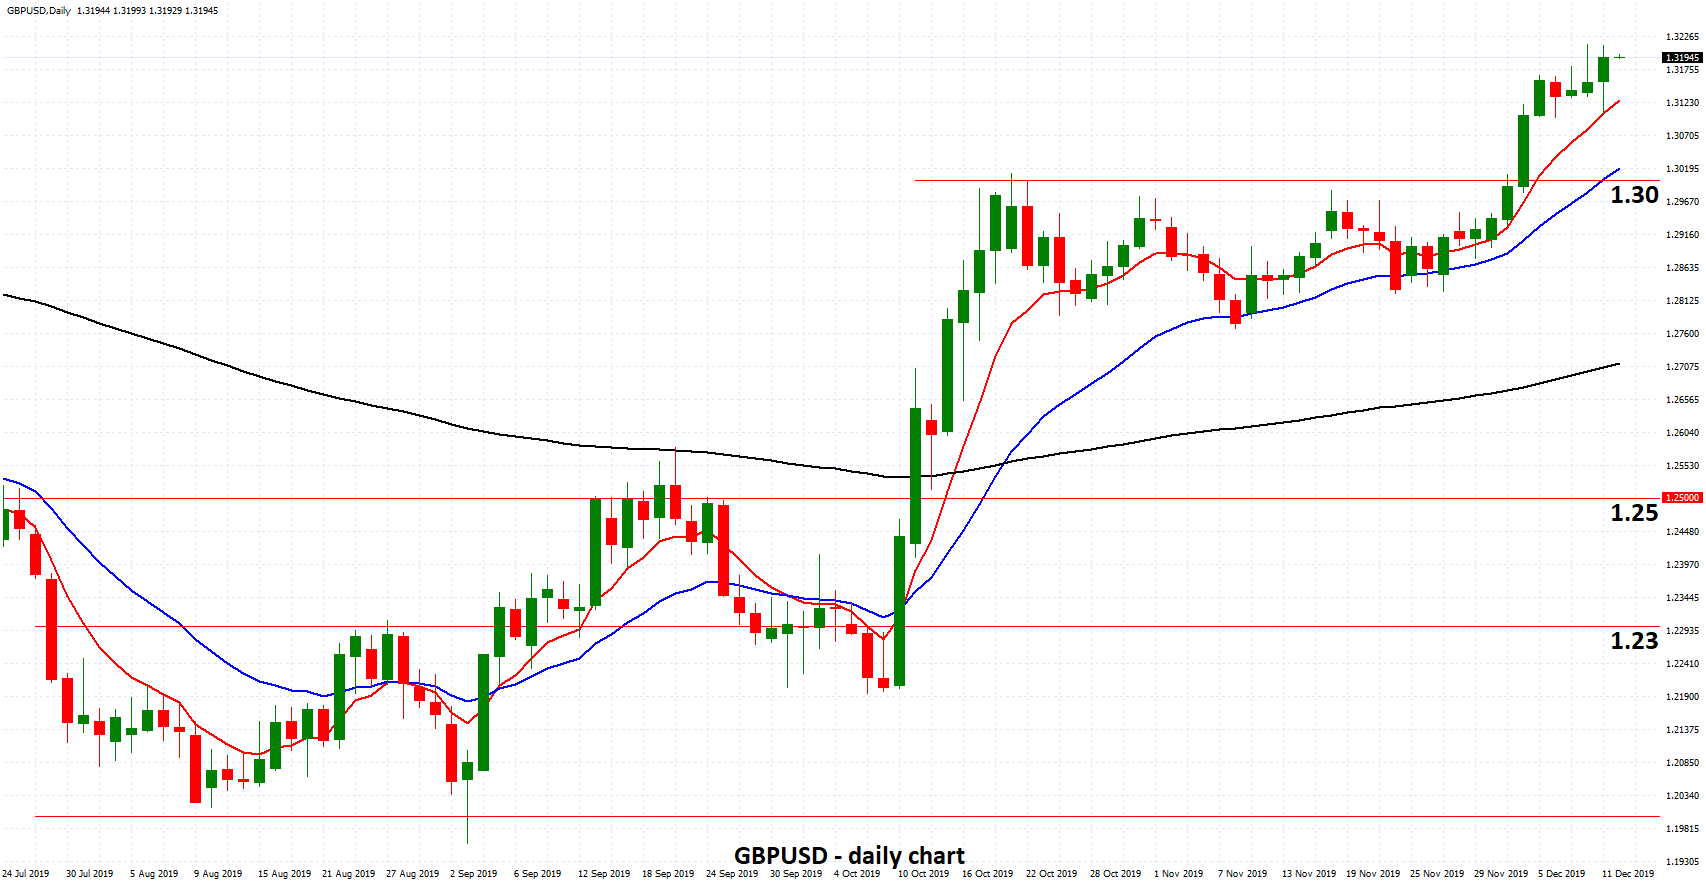 GBPUSD - Moves to Nine Month High above 1.32 Ahead of Pivotal Election